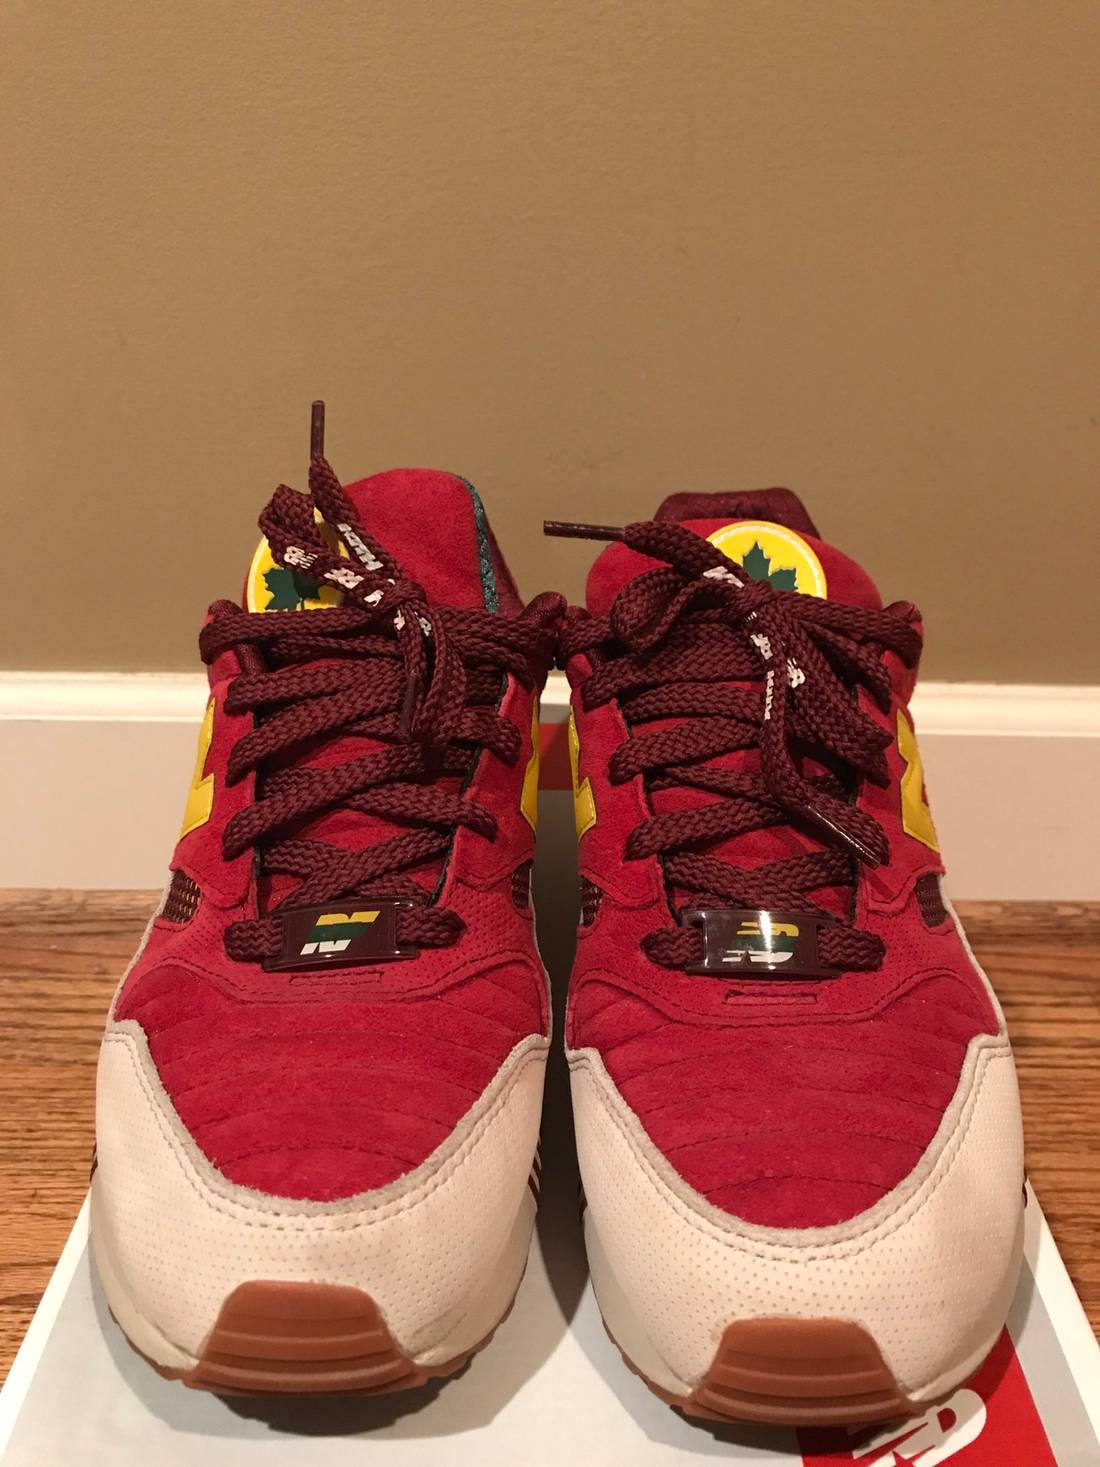 new balance kith x new balance 530 central park size 10 low top